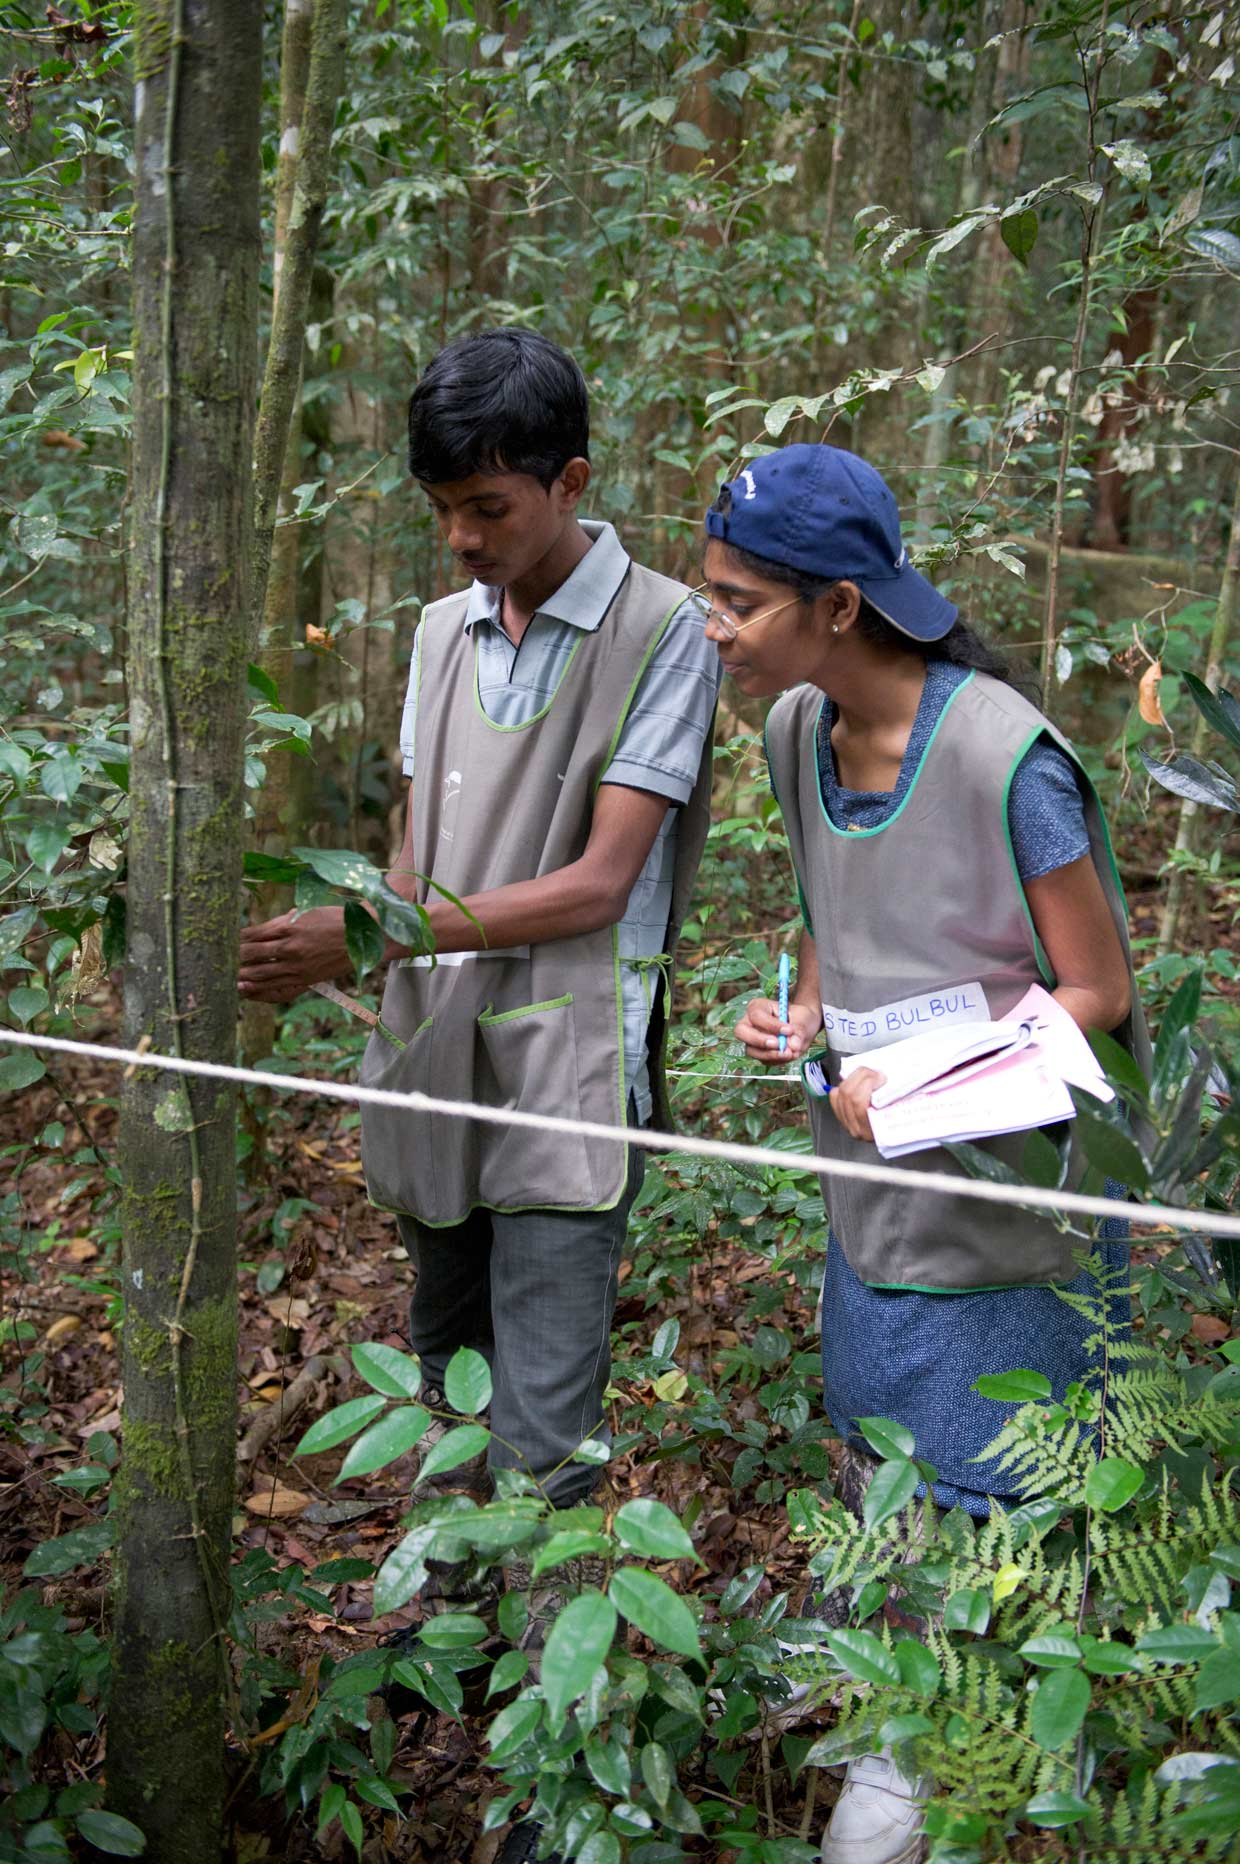 Youth from northern Sri Lanka exploring the Sinharaja World Heritage Site in the south. Using nature as platform to heal the wounds of war is part of Dilmah's Reconciliation through Power of Nature Initiative since 2011.